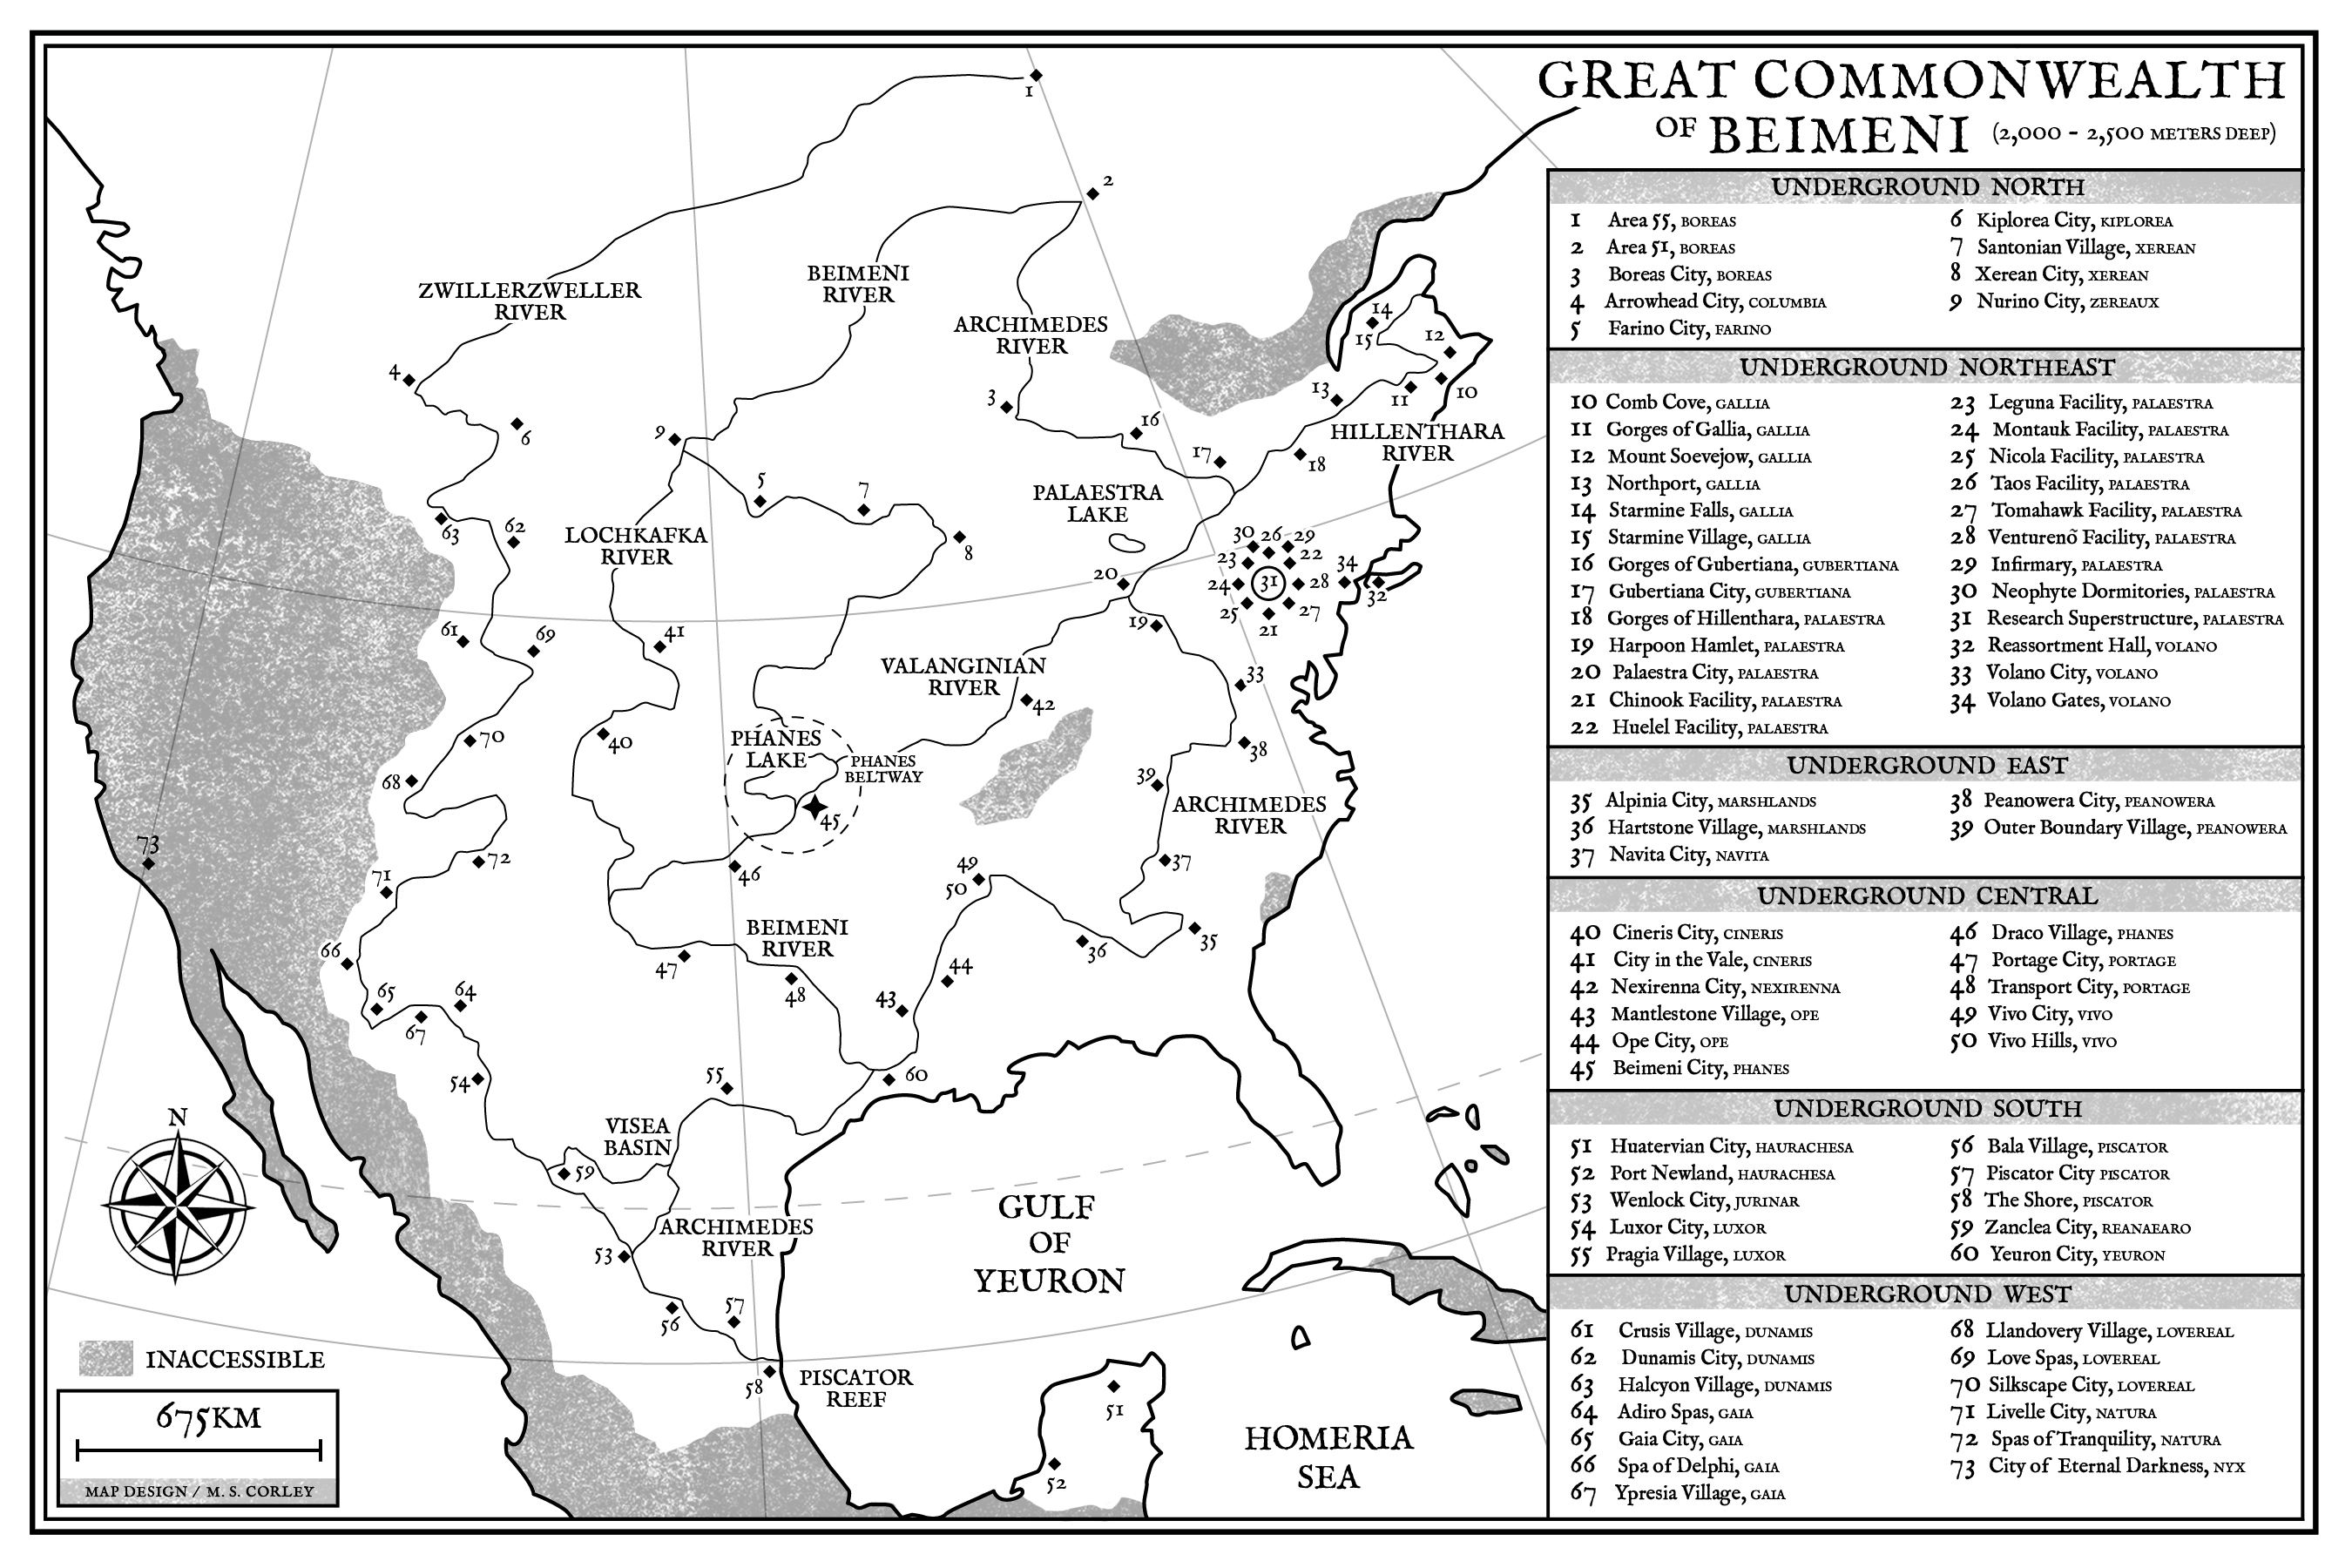 6x9_map_GreatCommonwealth_UPDATE8.31.15 (1)